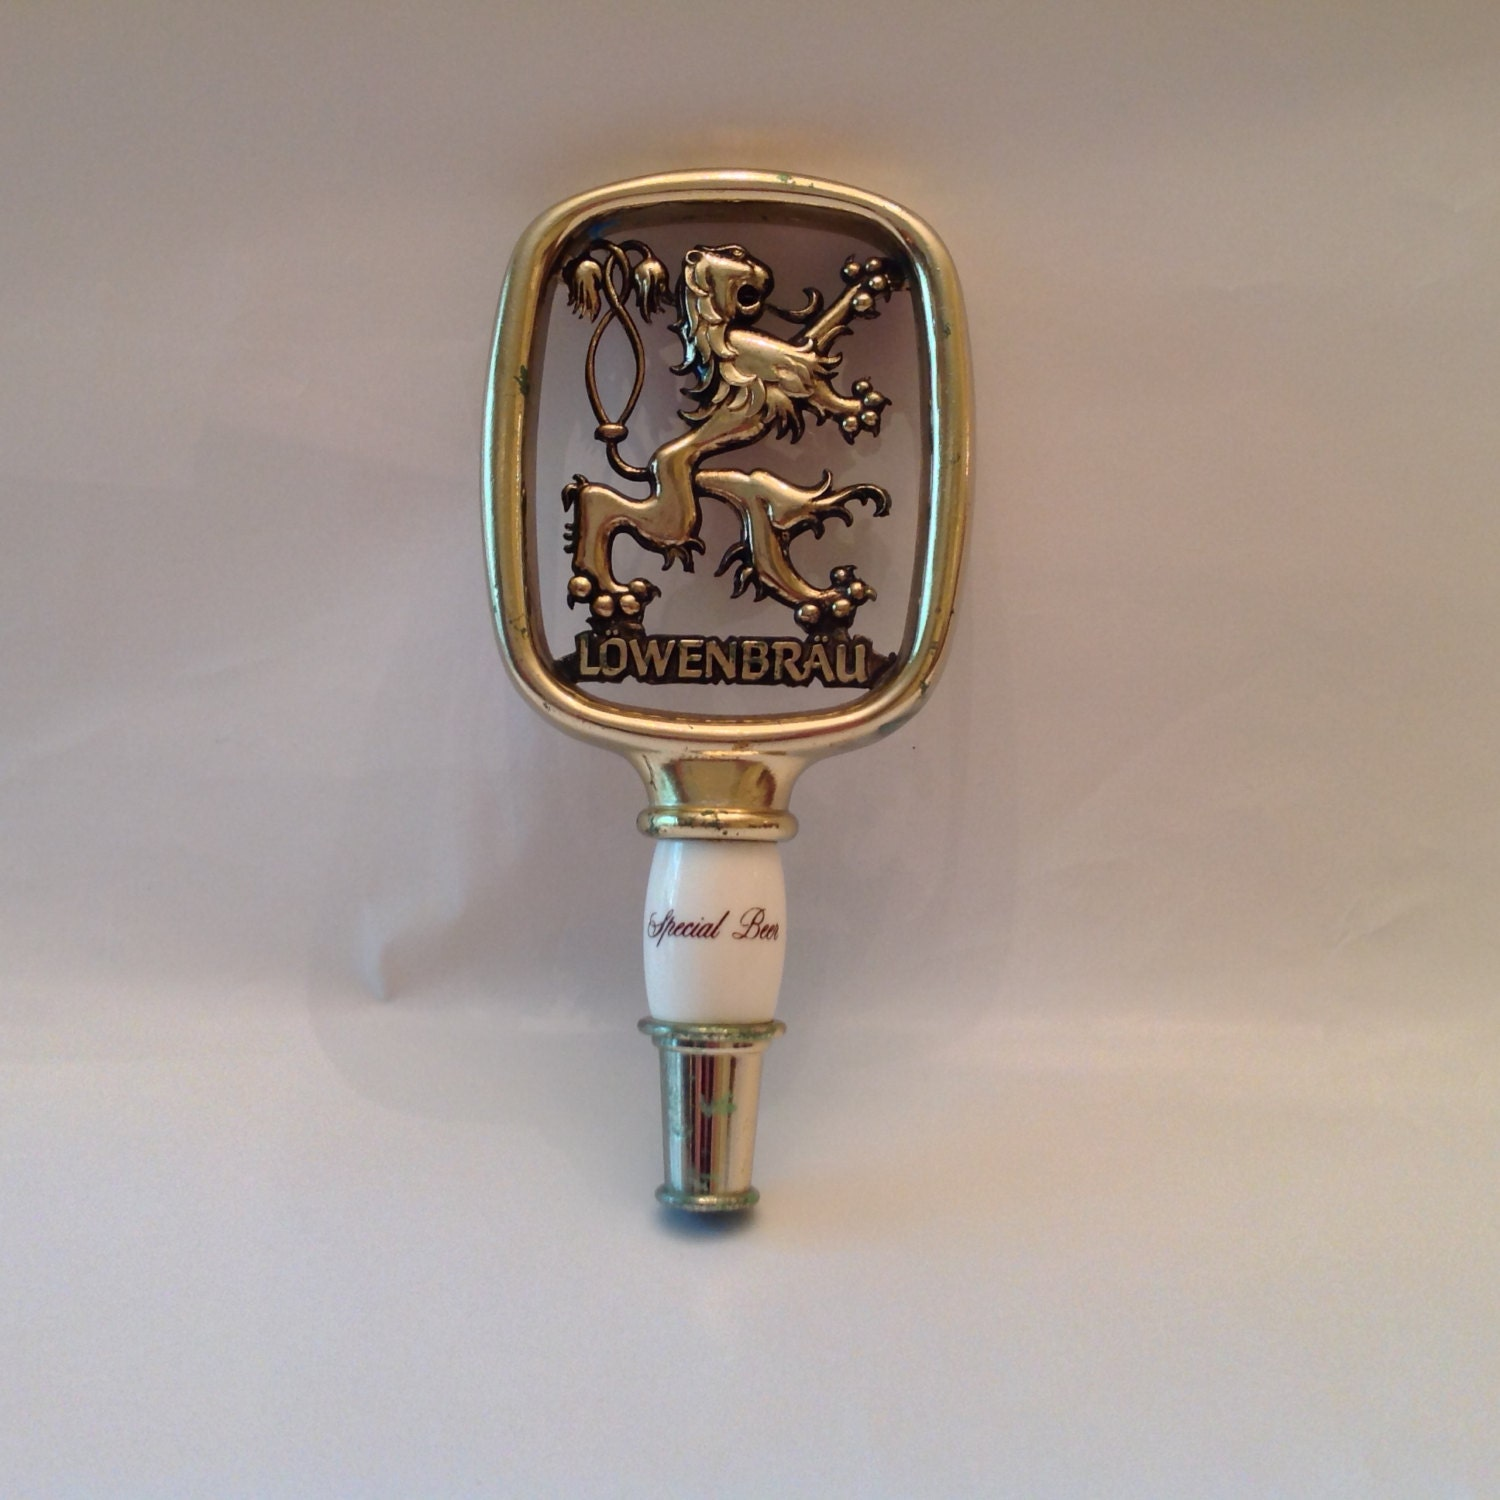 Vintage Rare Lowenbrau Beer Tap Handle With Lion Logo